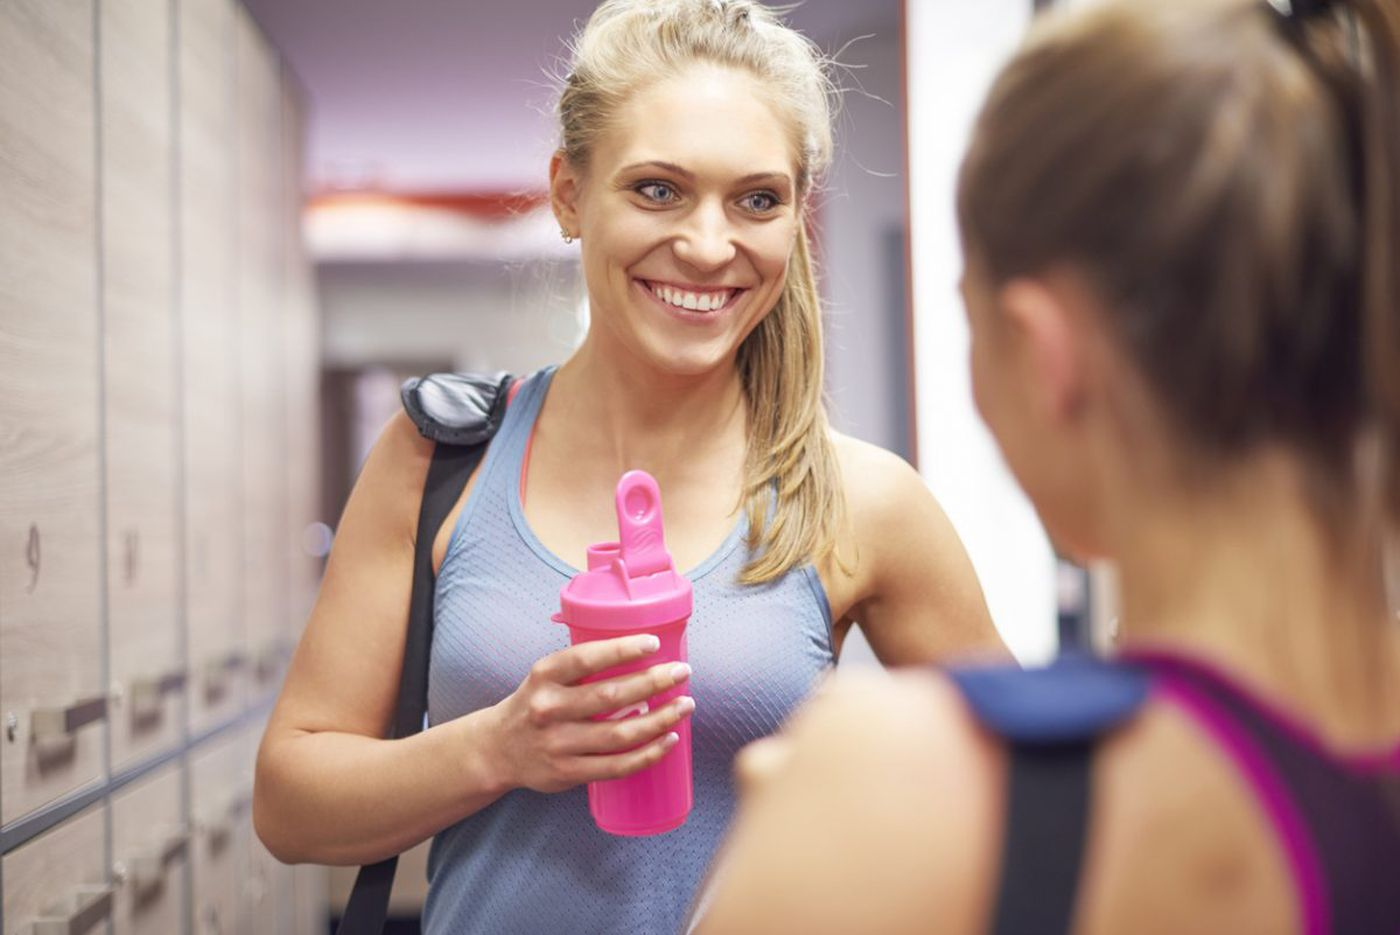 7 reasons not to compliment someone on weight loss - and what to say instead